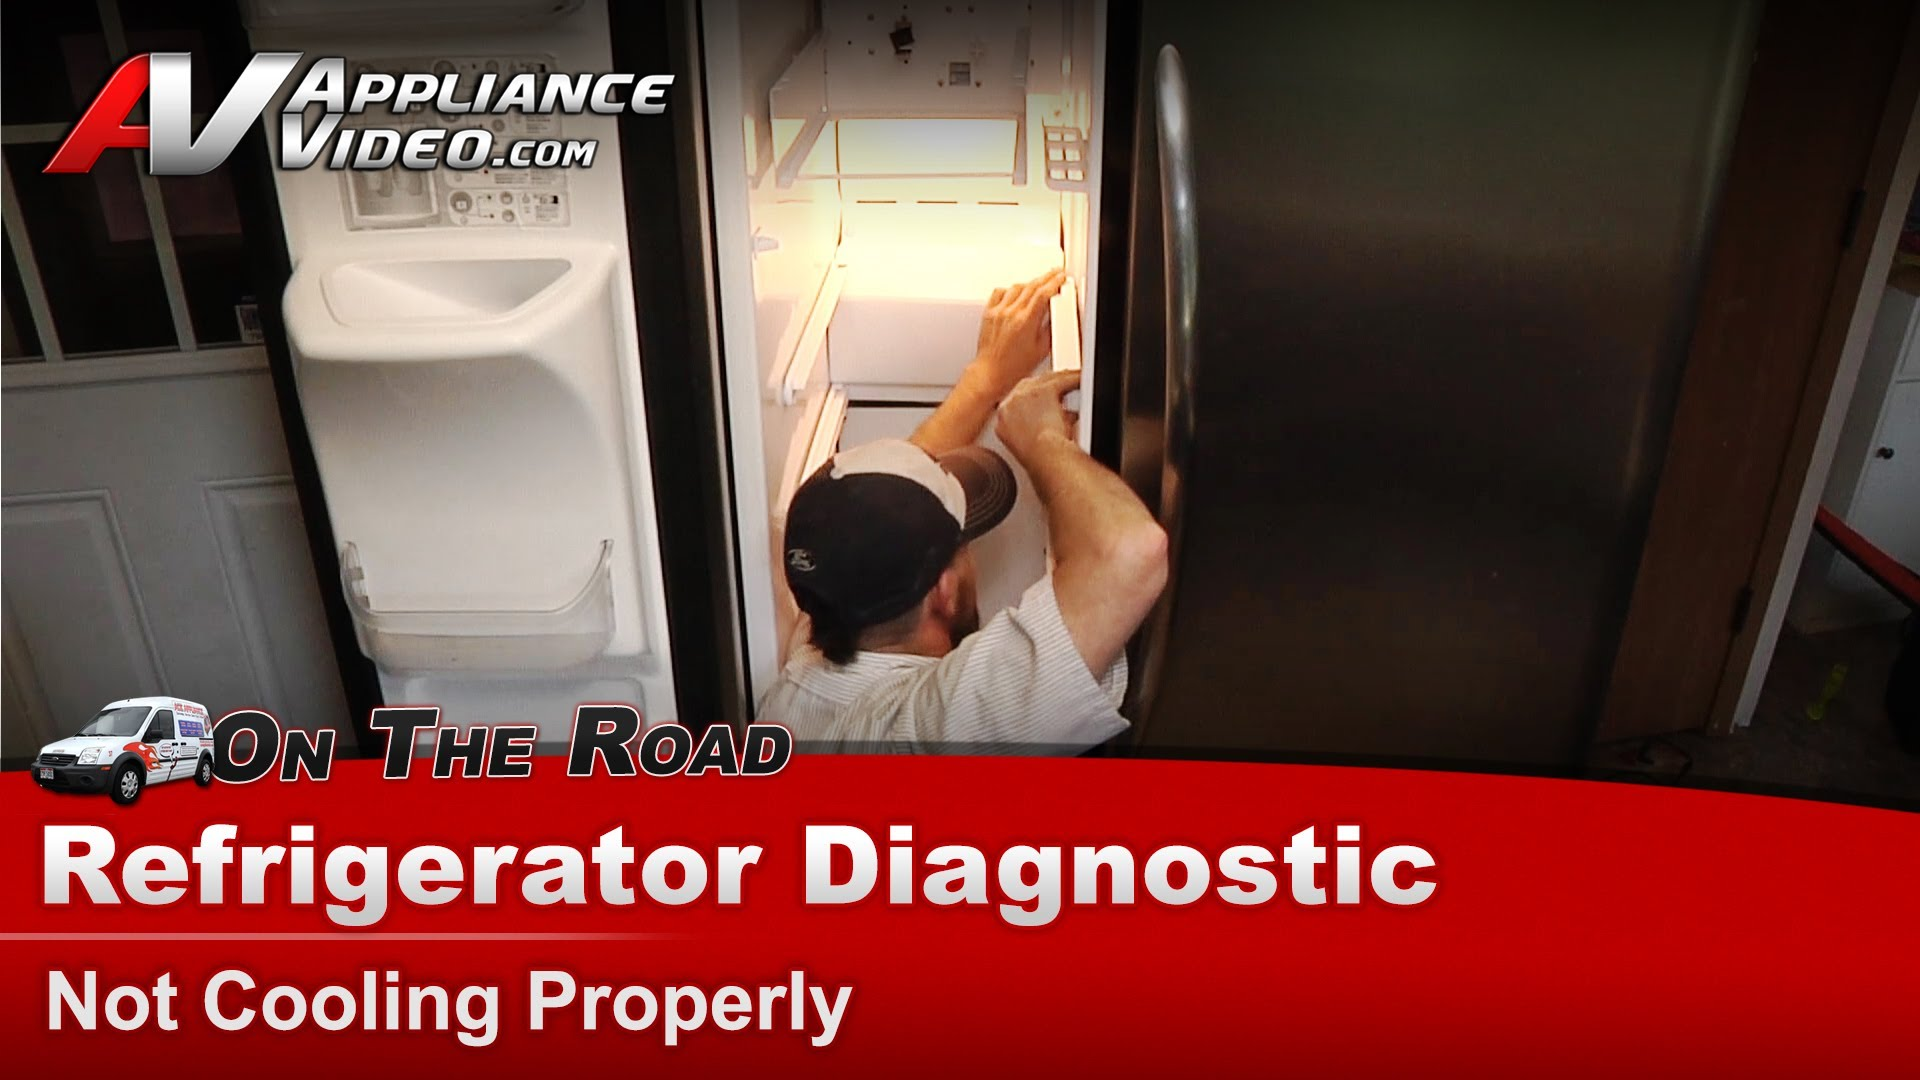 Frigidaire Frs26lf8cs1 Refrigerator Diagnostic Not